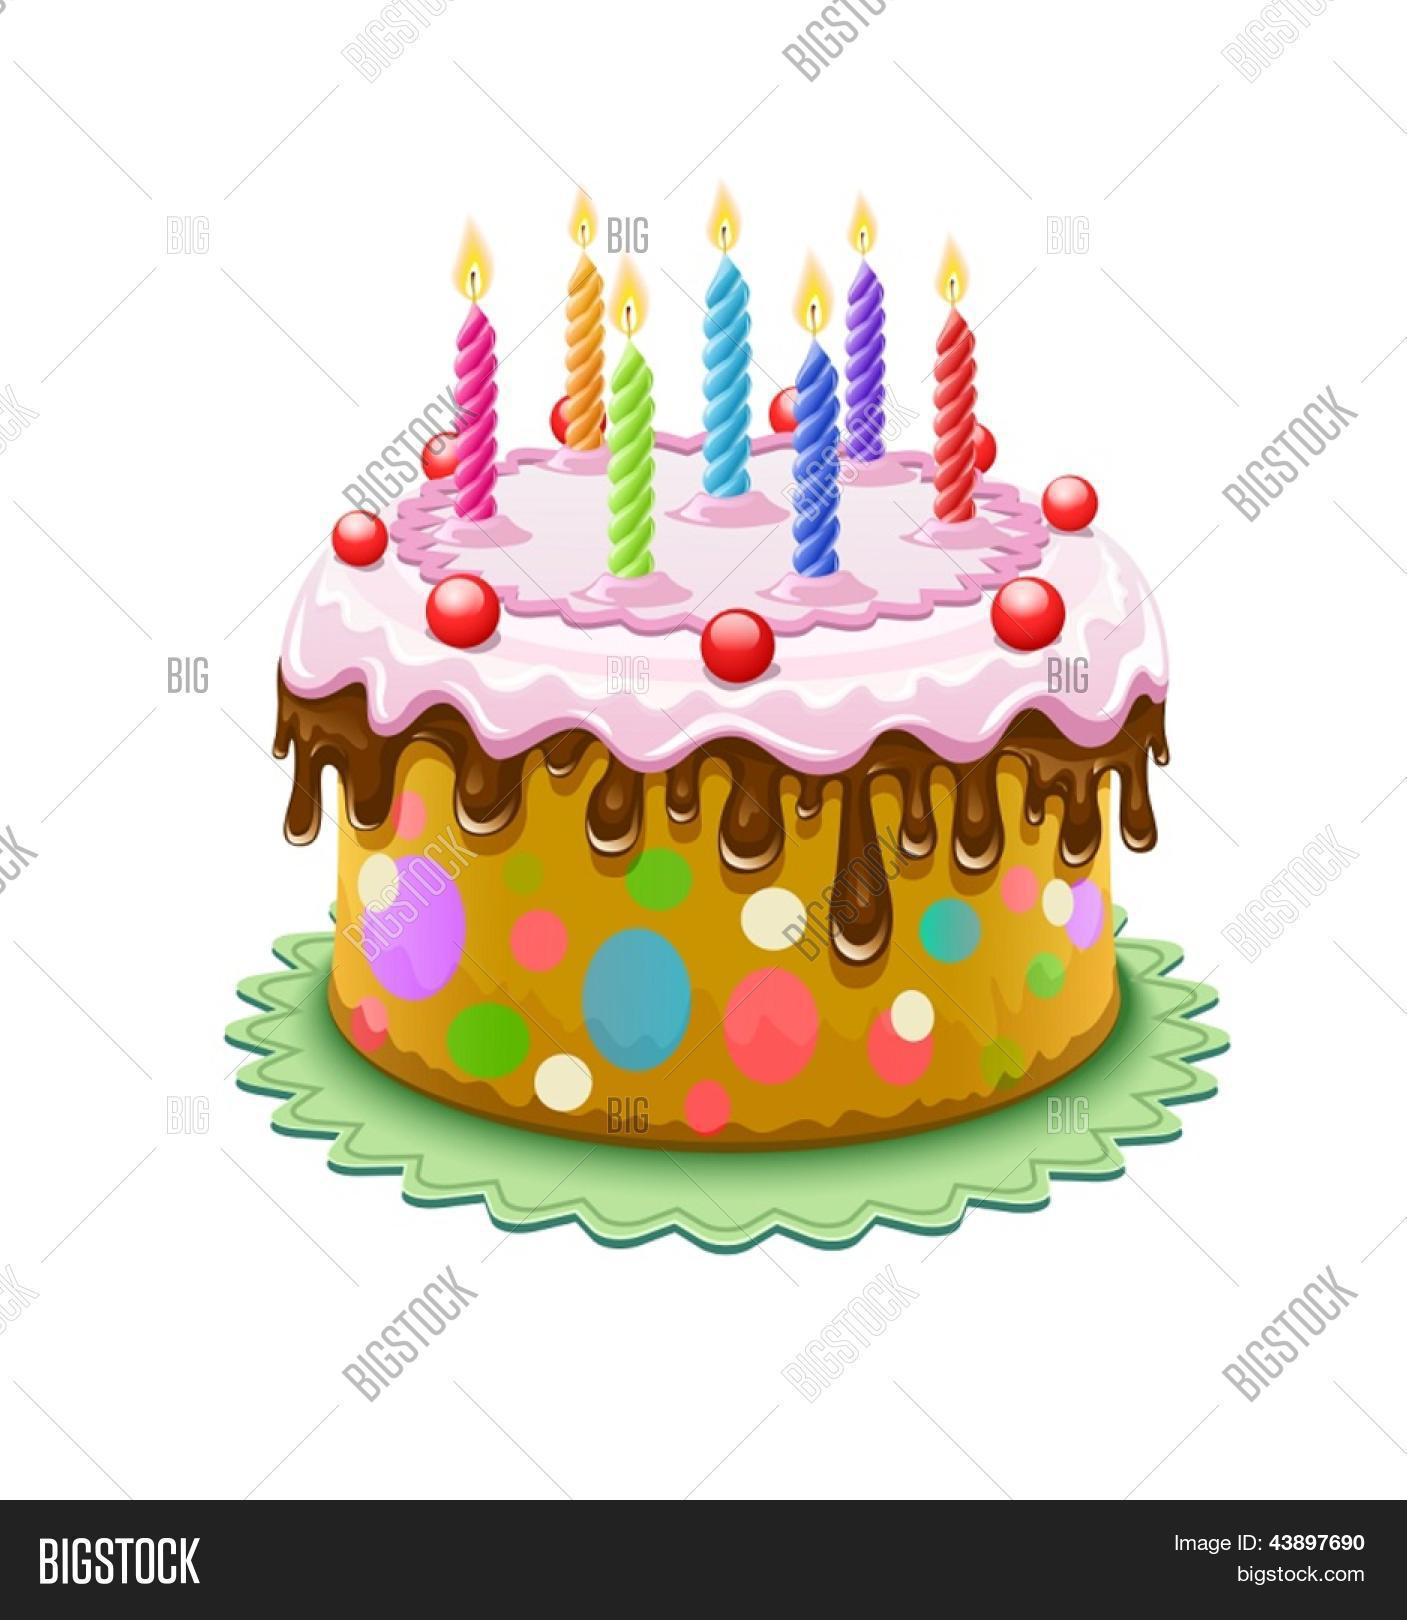 Birthday Cake With Chocolate Creme And Burning Candles Isolated On White Background